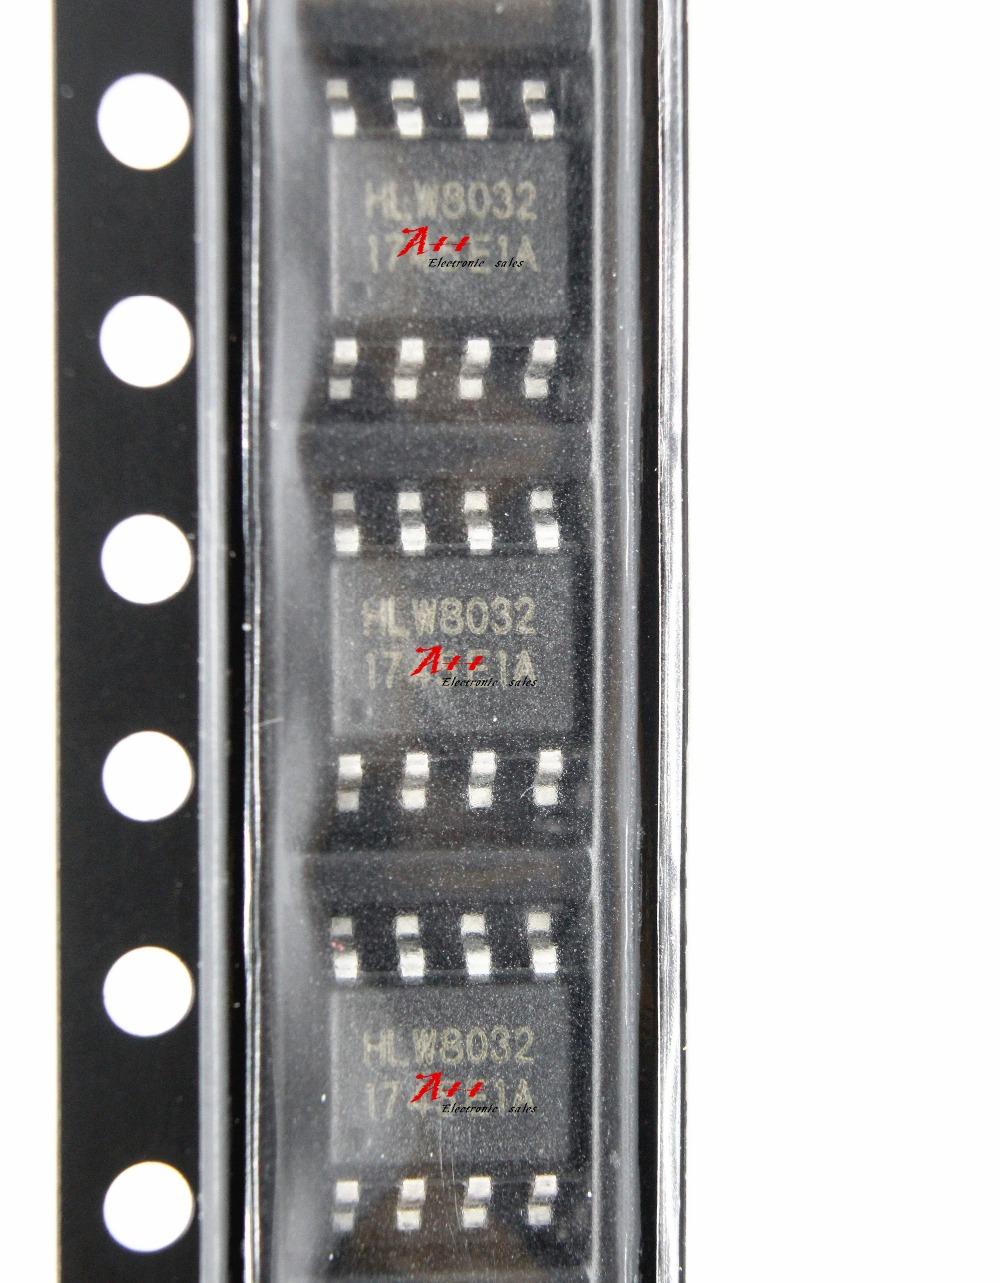 Free shipping,Single phase multifunction power metering chip 100PCS HLW8032 SOP 8-in Integrated Circuits from Electronic Components & Supplies